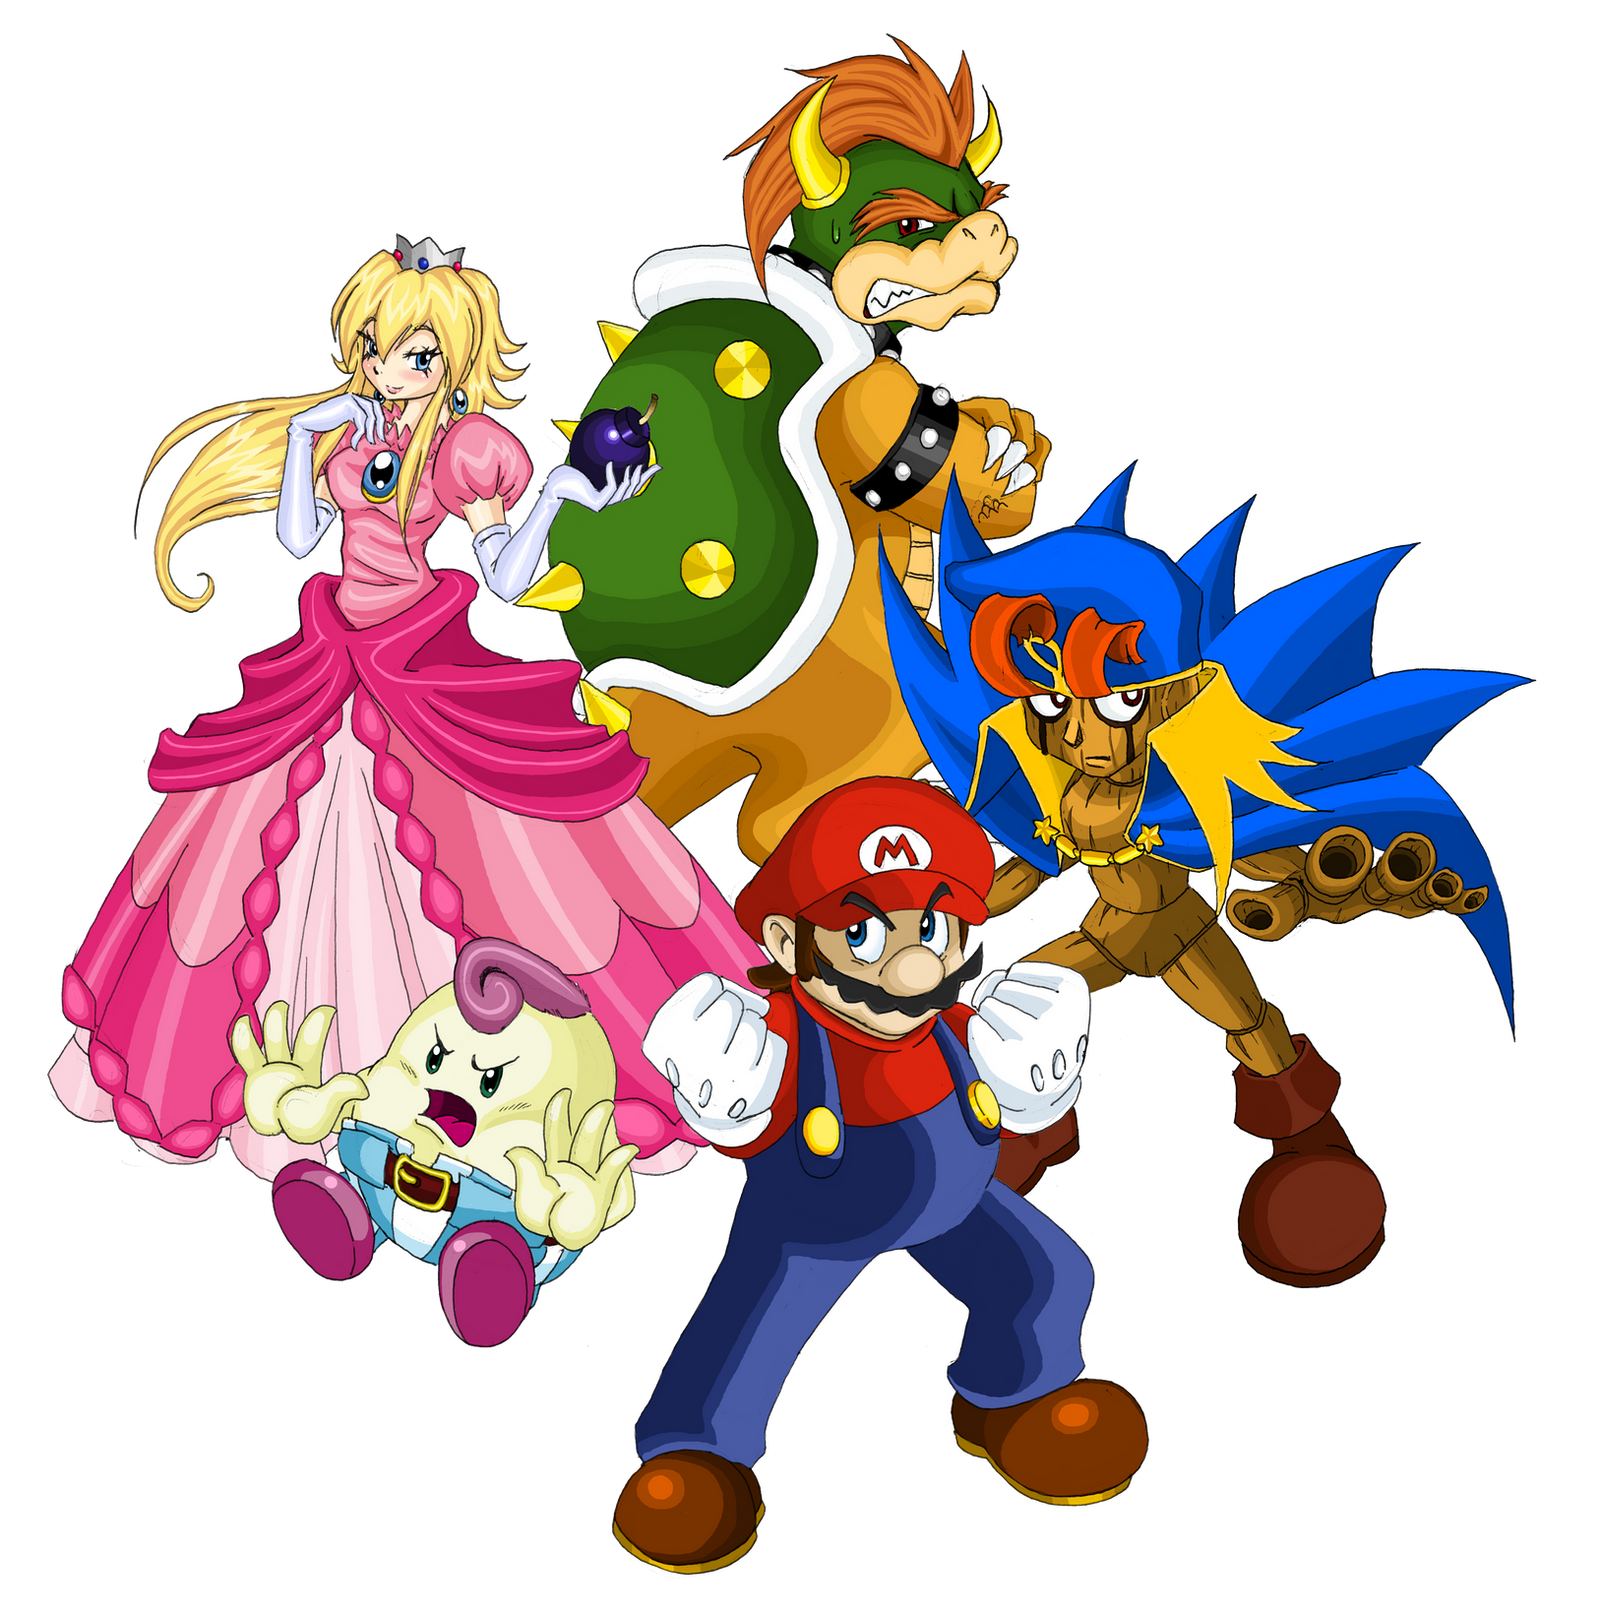 Super Mario RPG - Five Heroes by kamon-san